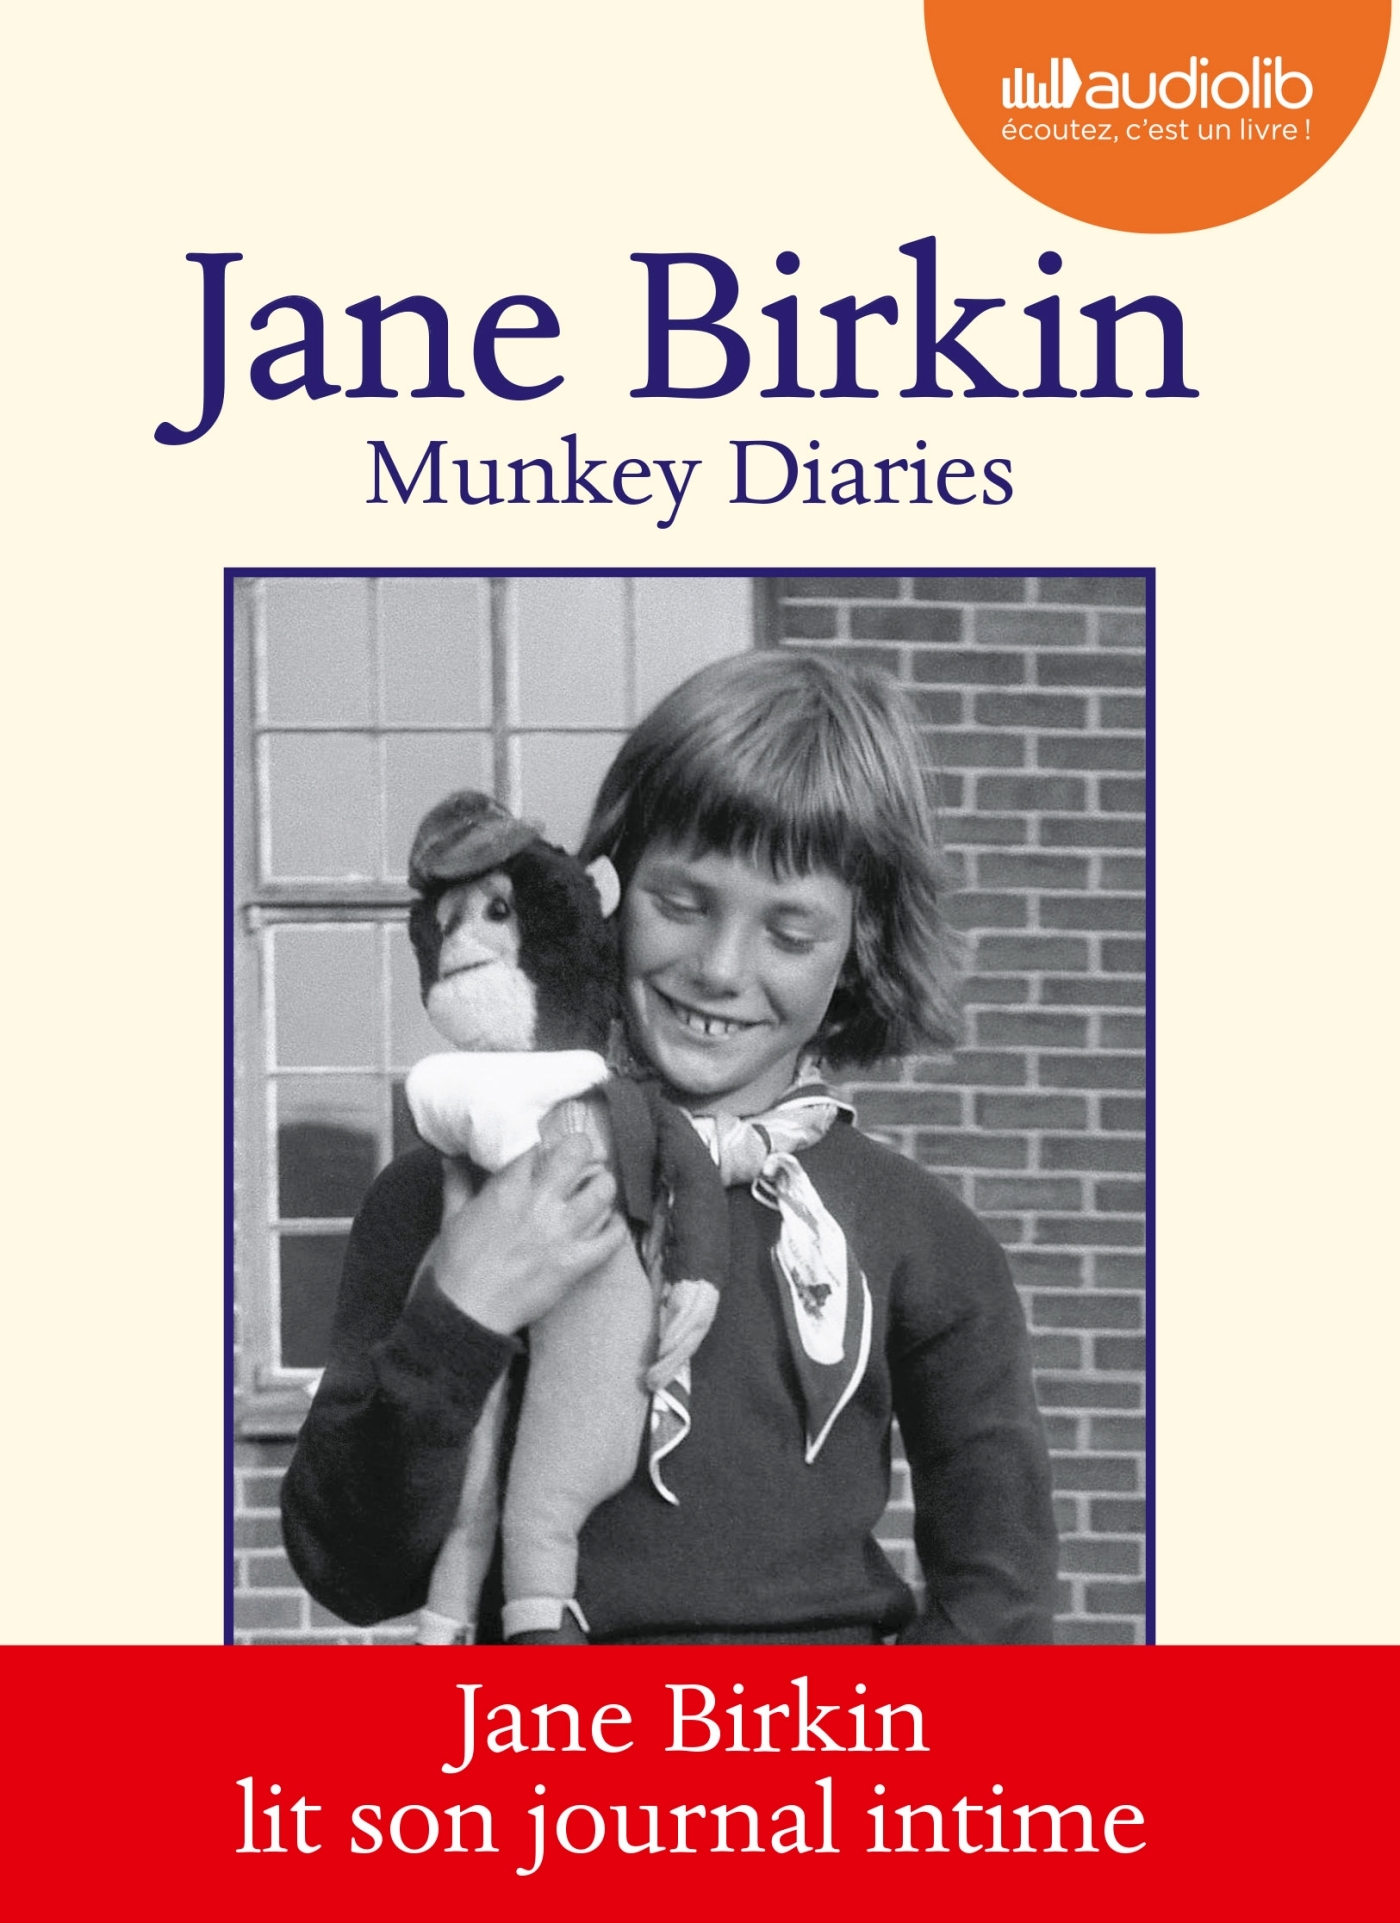 MUNKEY DIARIES (1957-1982) - LIVRE AUDIO 2 CD MP3